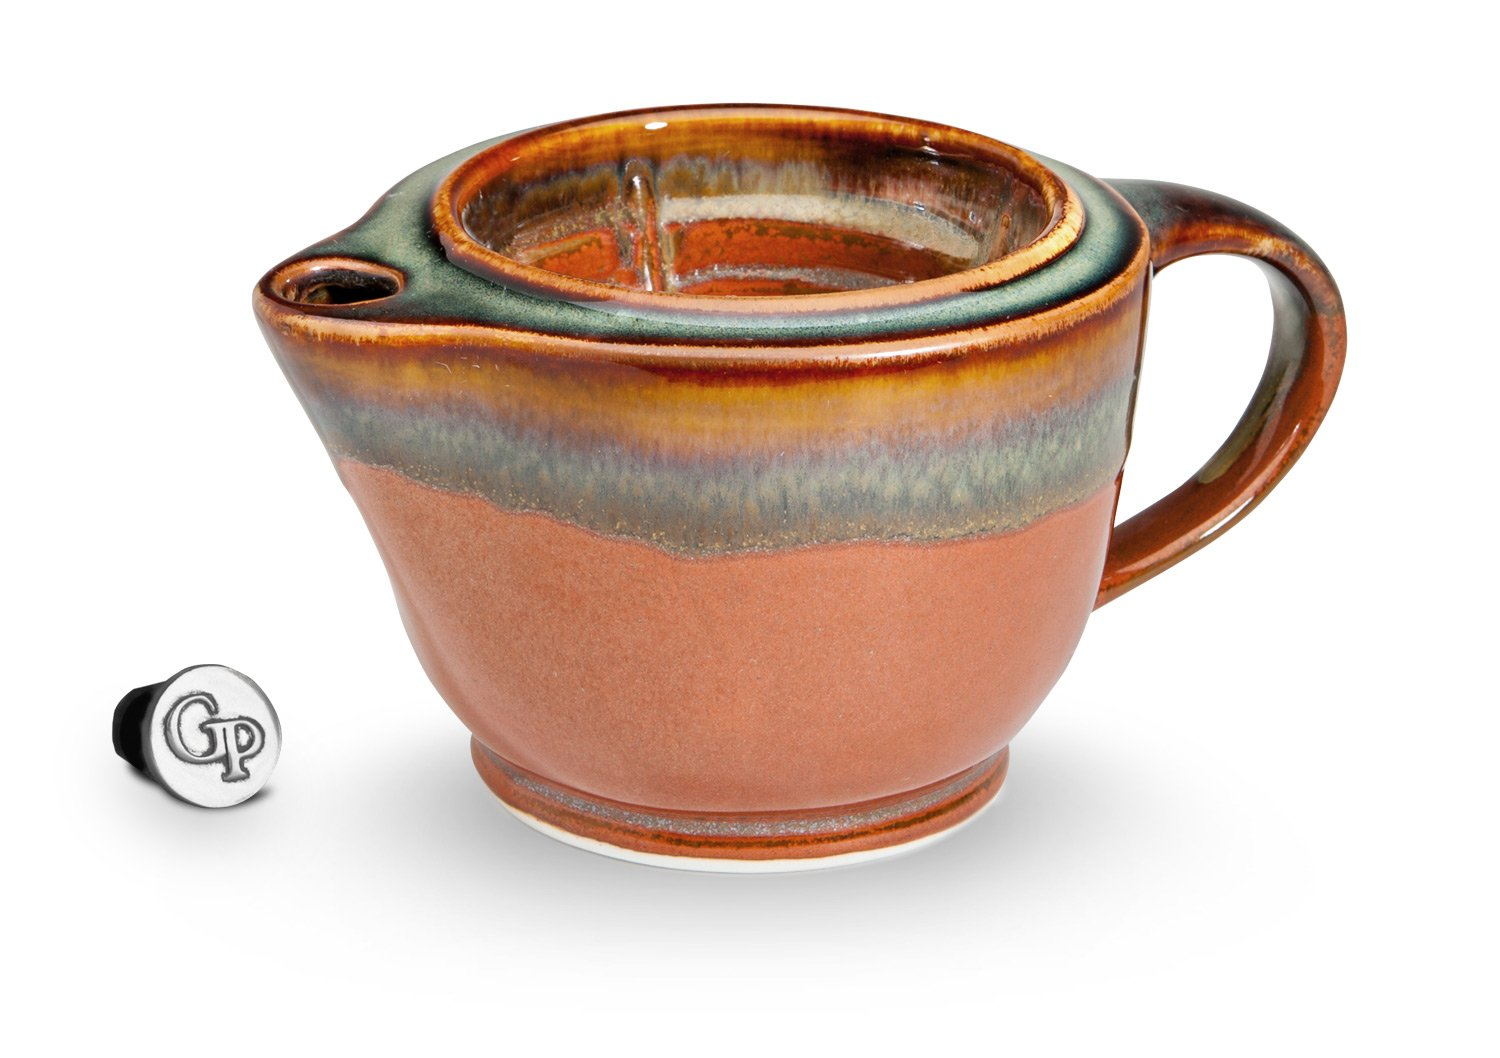 Georgetown Pottery G20 Shaving Scuttle Mug - Hamada & Persimmon by Georgetown Pottery